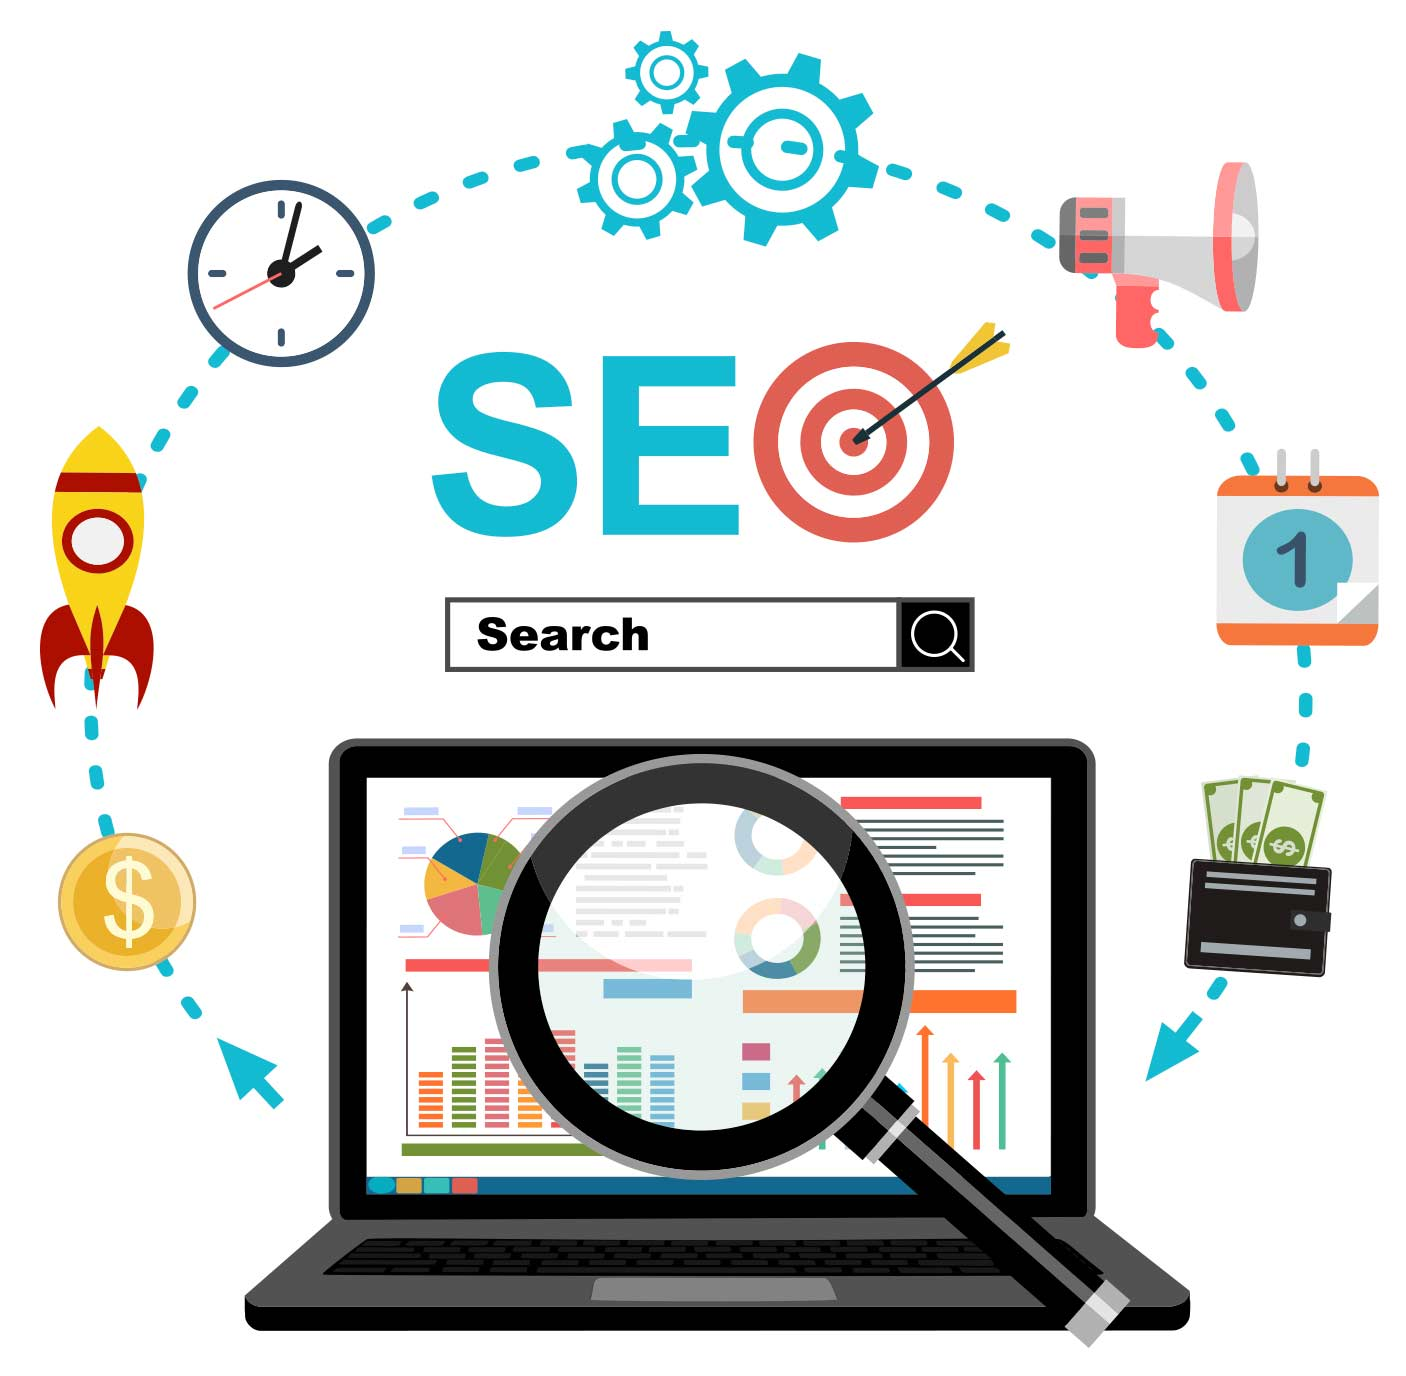 seo case studies We are an award winning full service digital marketing firm in the charlotte area view our seo case study to learn more or contact us today.